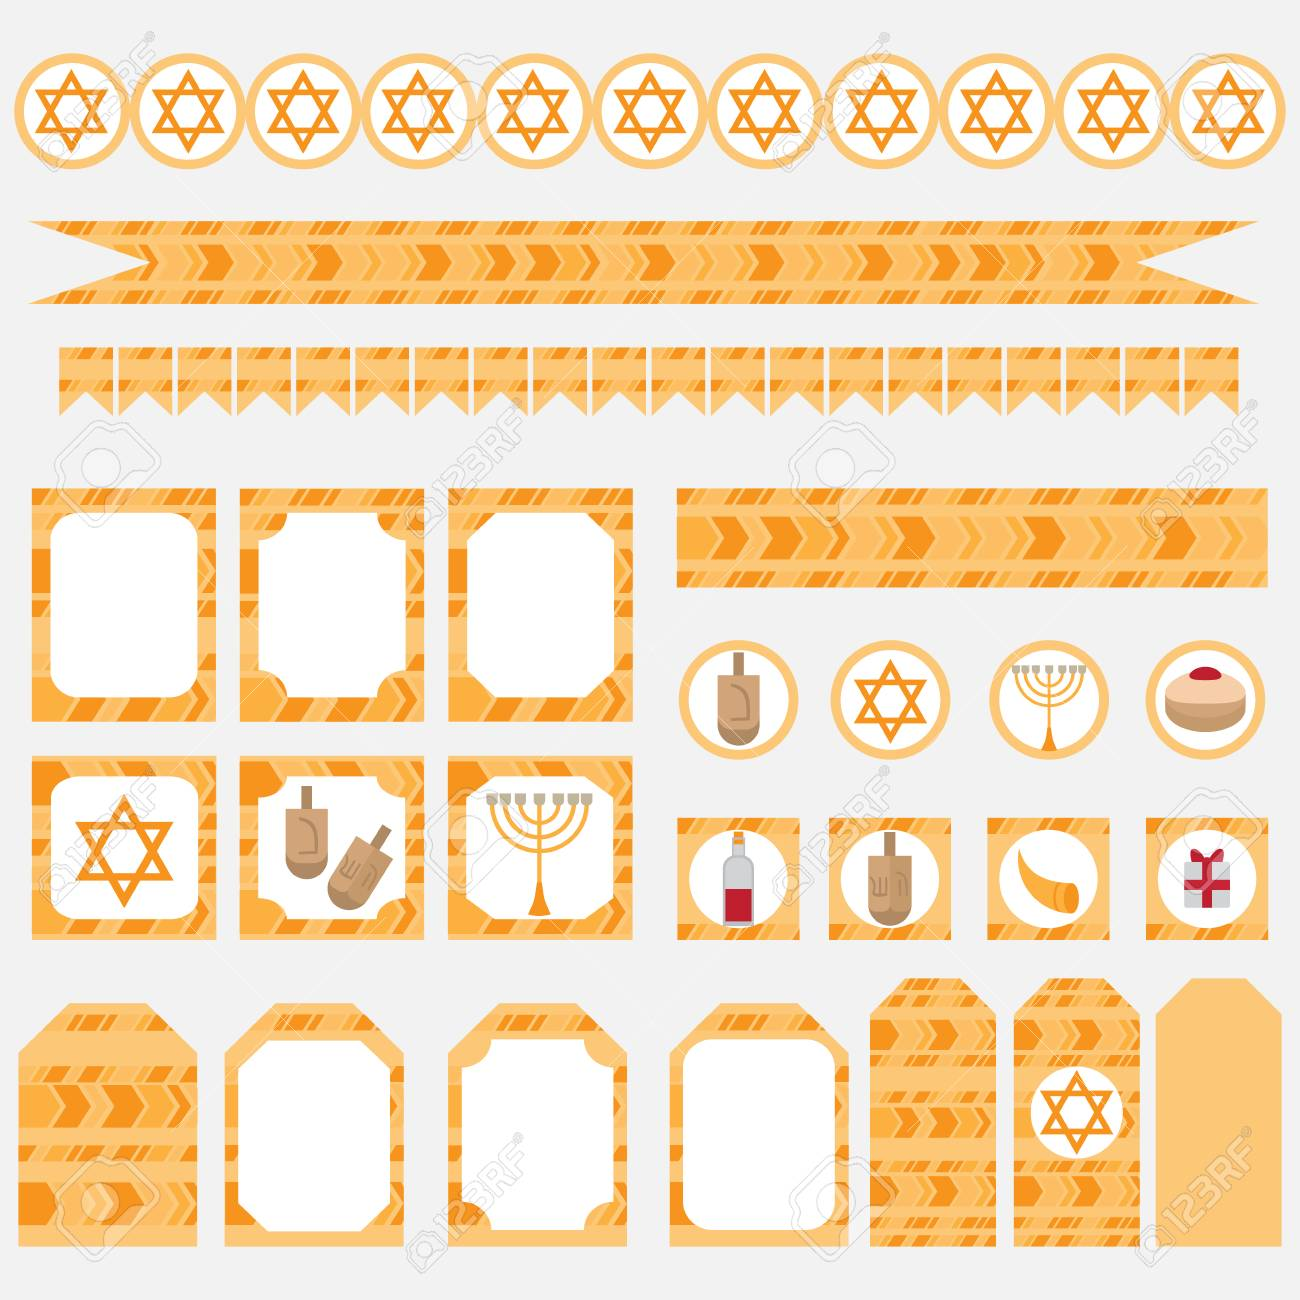 graphic regarding Printable Elements identify Printable fastened of Jewish holiday vacation Hanukkah get together things. Templates,..